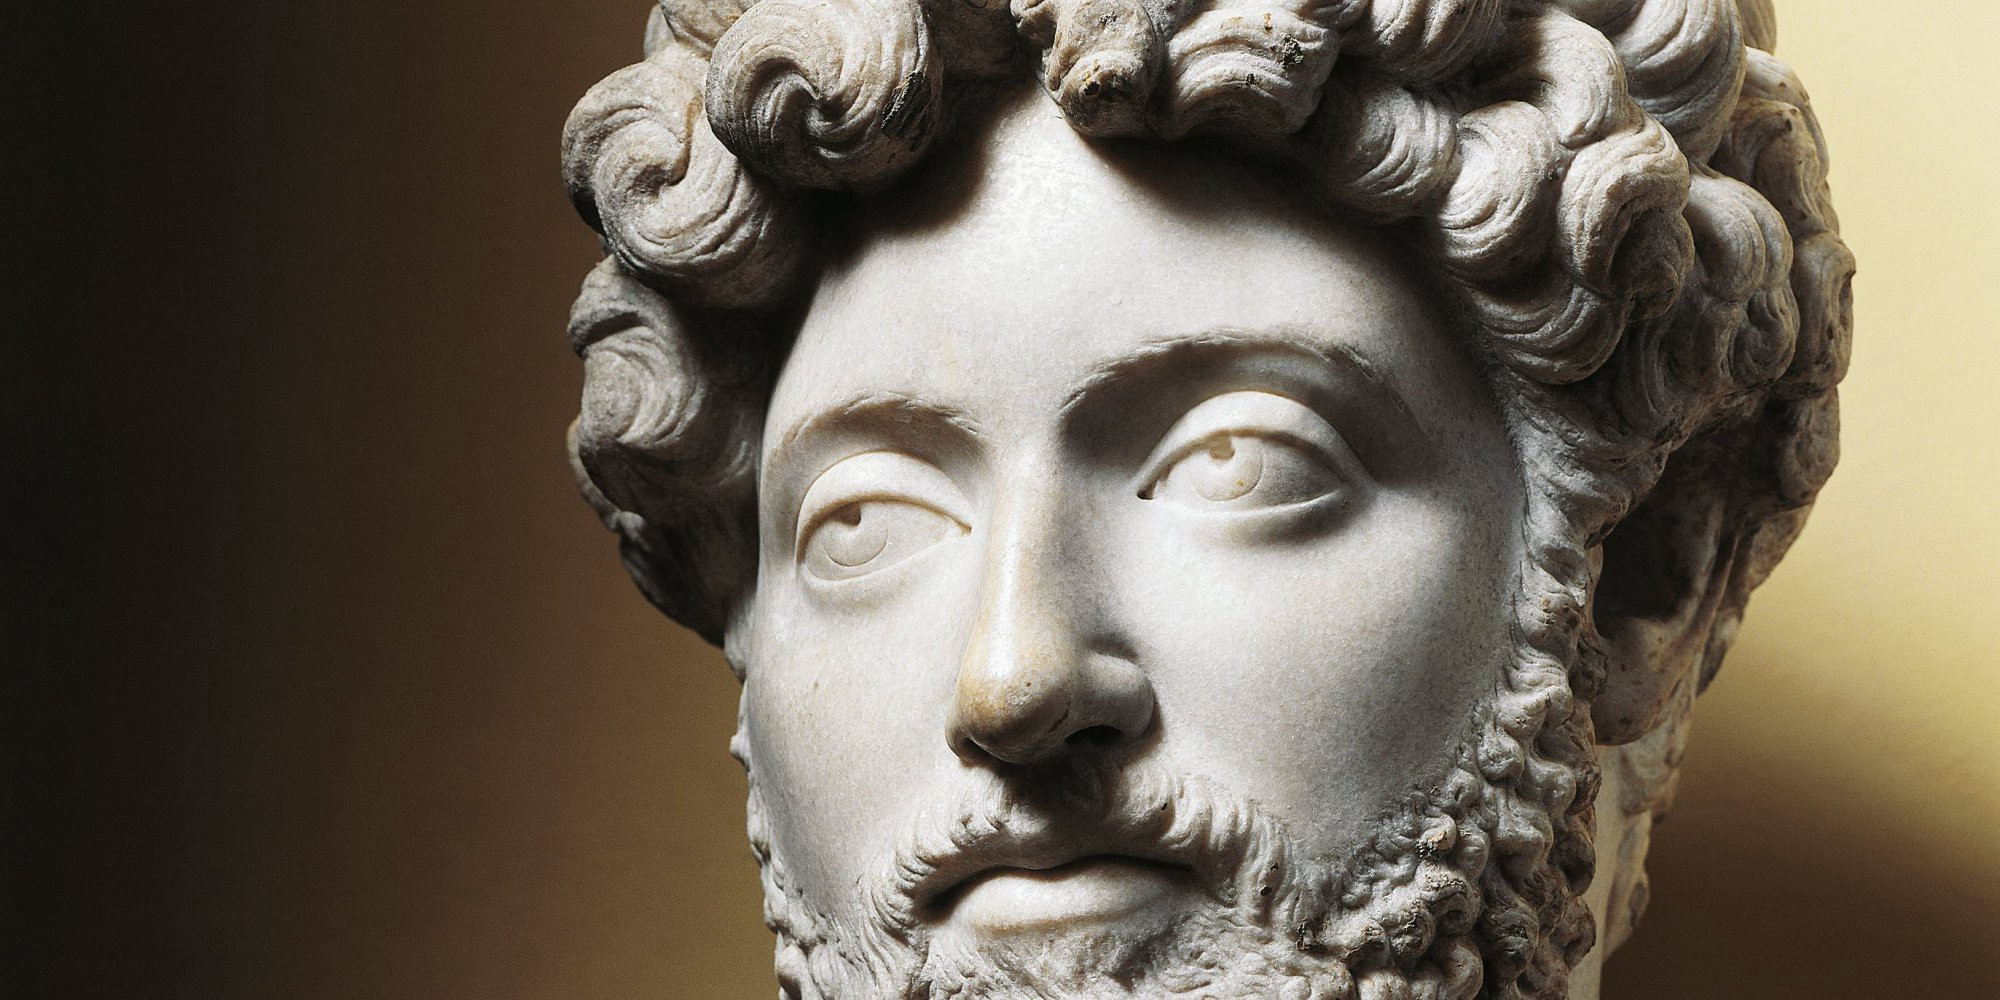 How to Begin Each Day for Optimal Sanity (Marcus Aurelius Meditations)